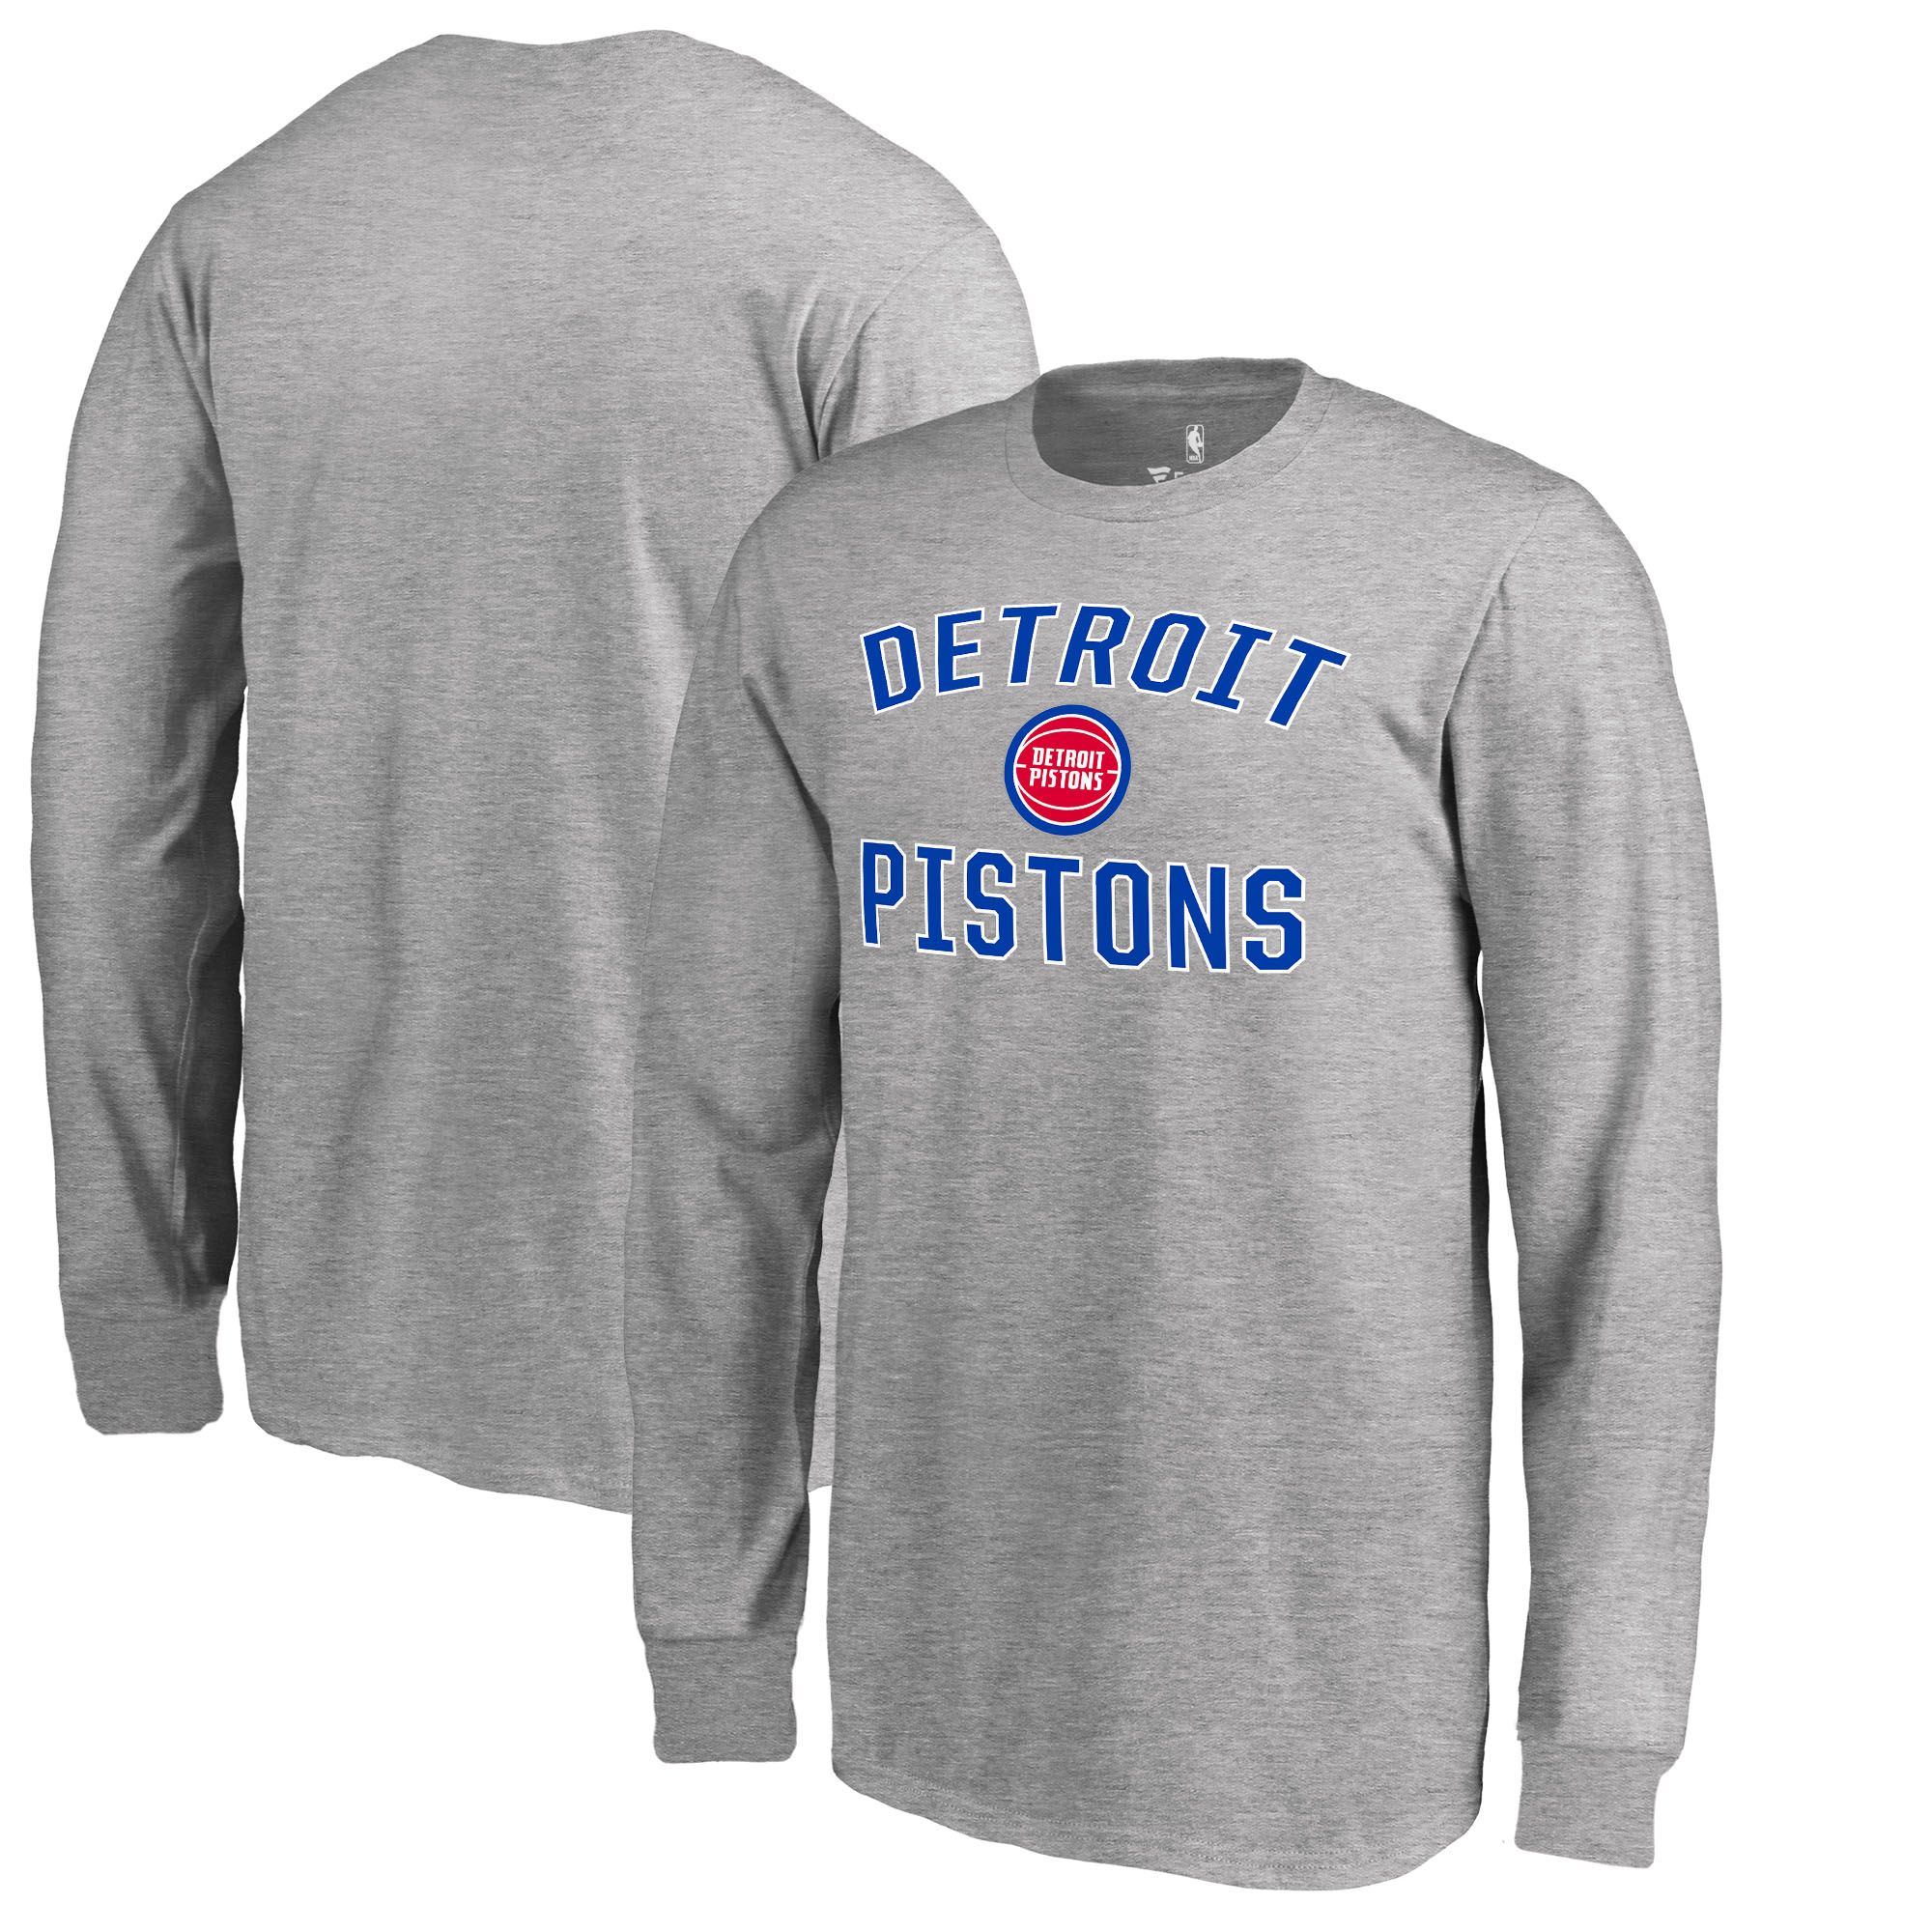 Detroit Pistons Fanatics Branded Youth Victory Arch Long Sleeve T-Shirt - Heathered Gray